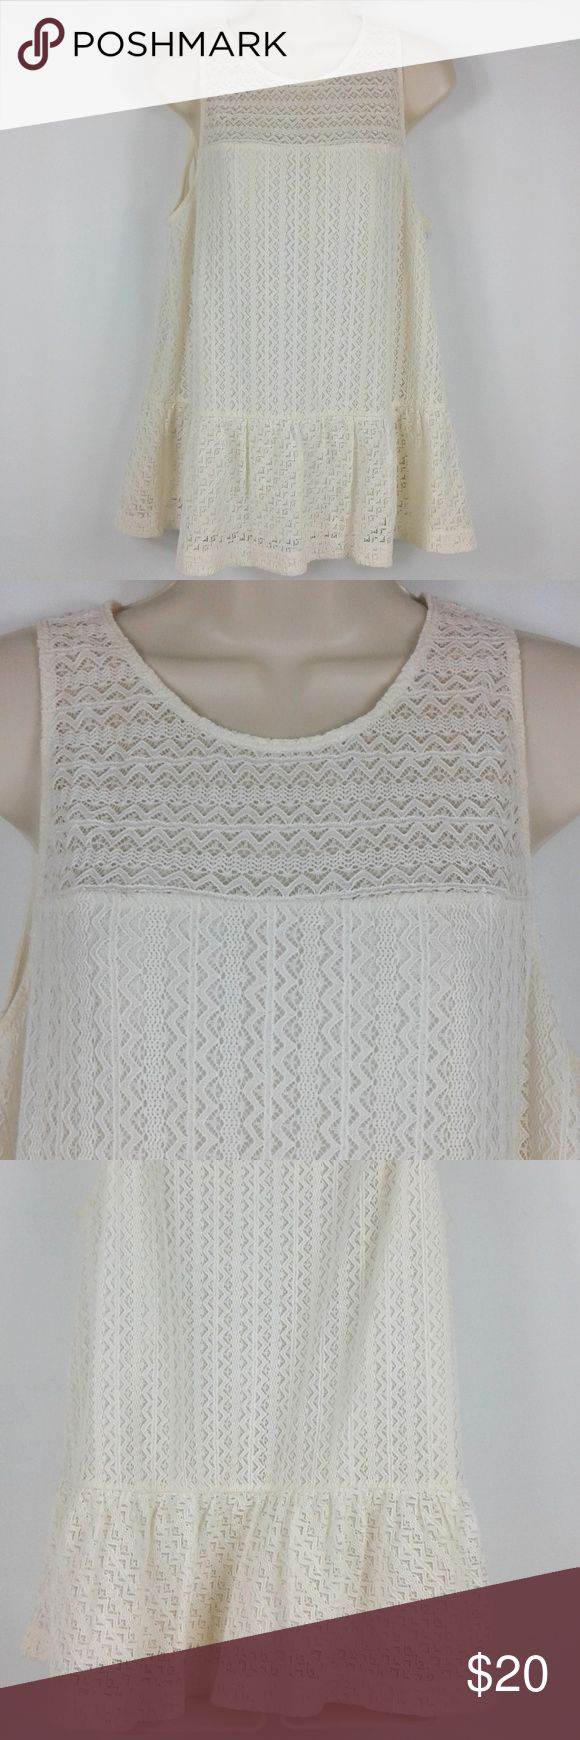 """Ann Taylor LOFT White Crochet Lace Top Cute white sleeveless top by Ann Taylor. This item is in really nice used condition. Note measurements to assure proper fit.  Size: Large Measurements Chest (pit to pit): 20"""" Height (back of collar to hem): 26"""" Ann Taylor LOFT Tops Blouses"""